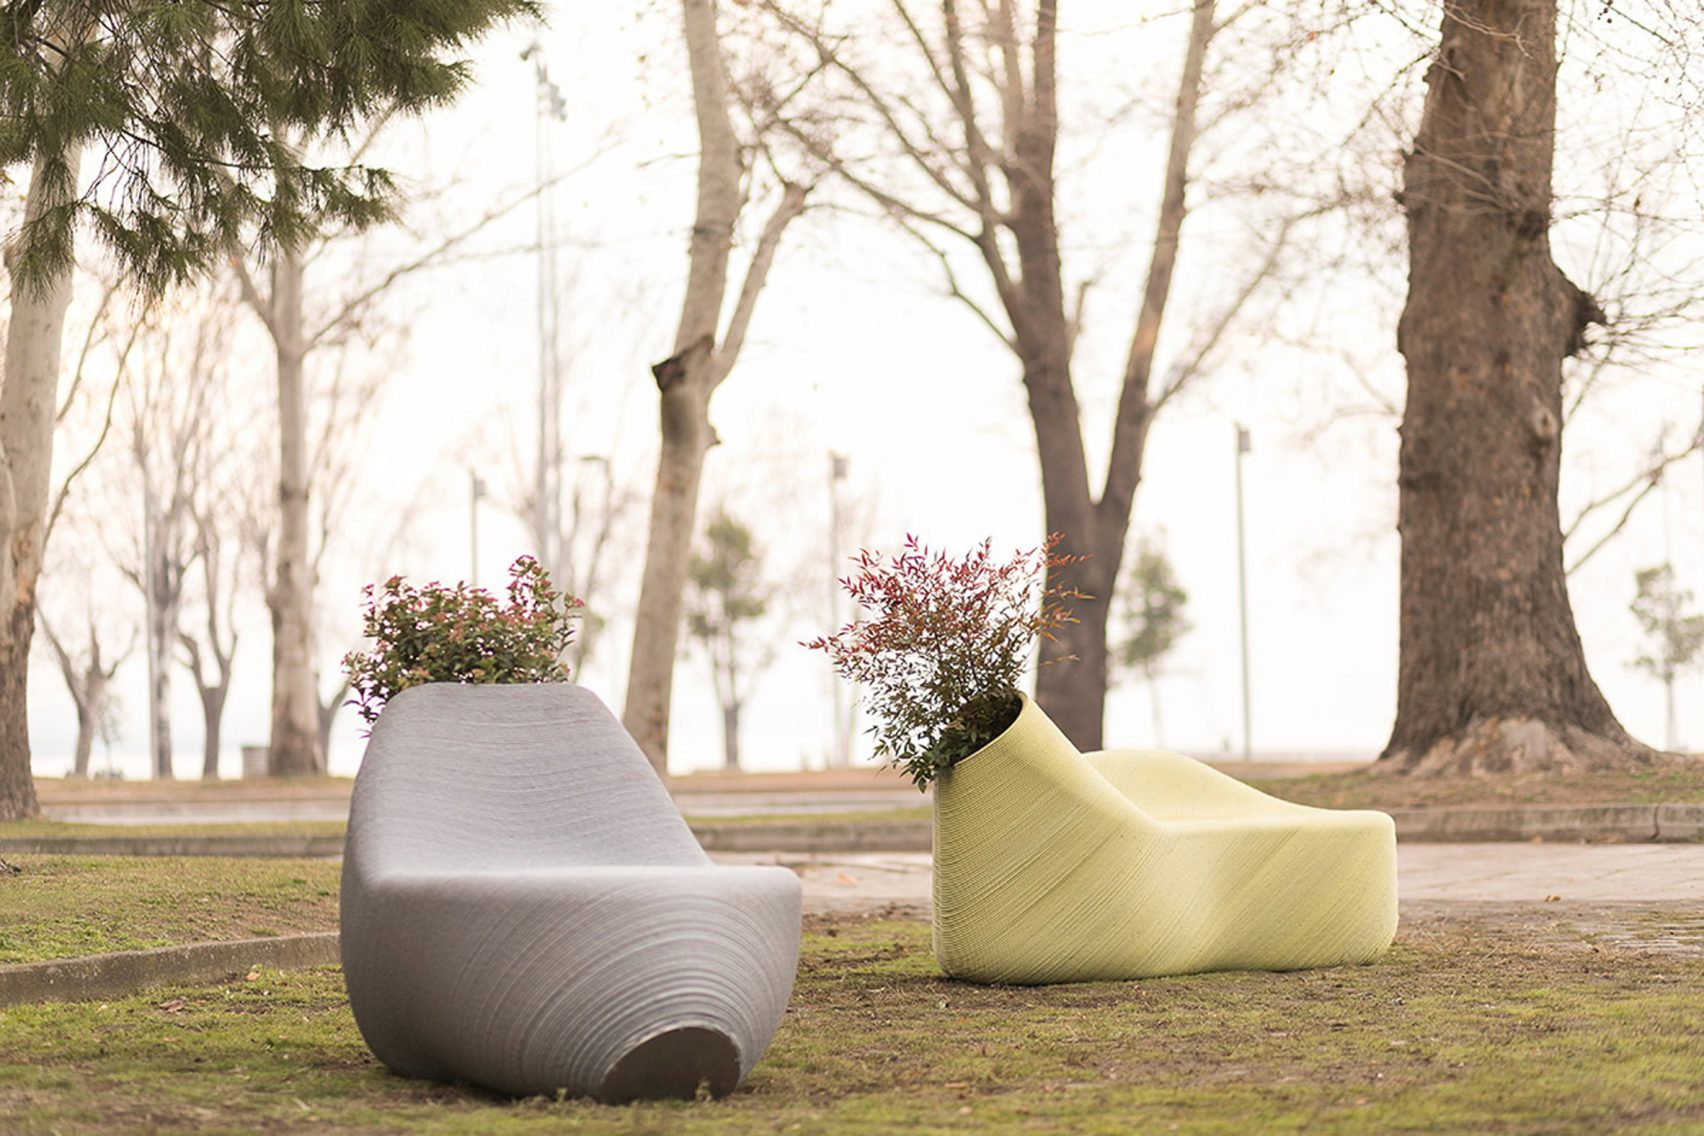 Print Your City Makes Outdoor Furniture From Recycled Plastic